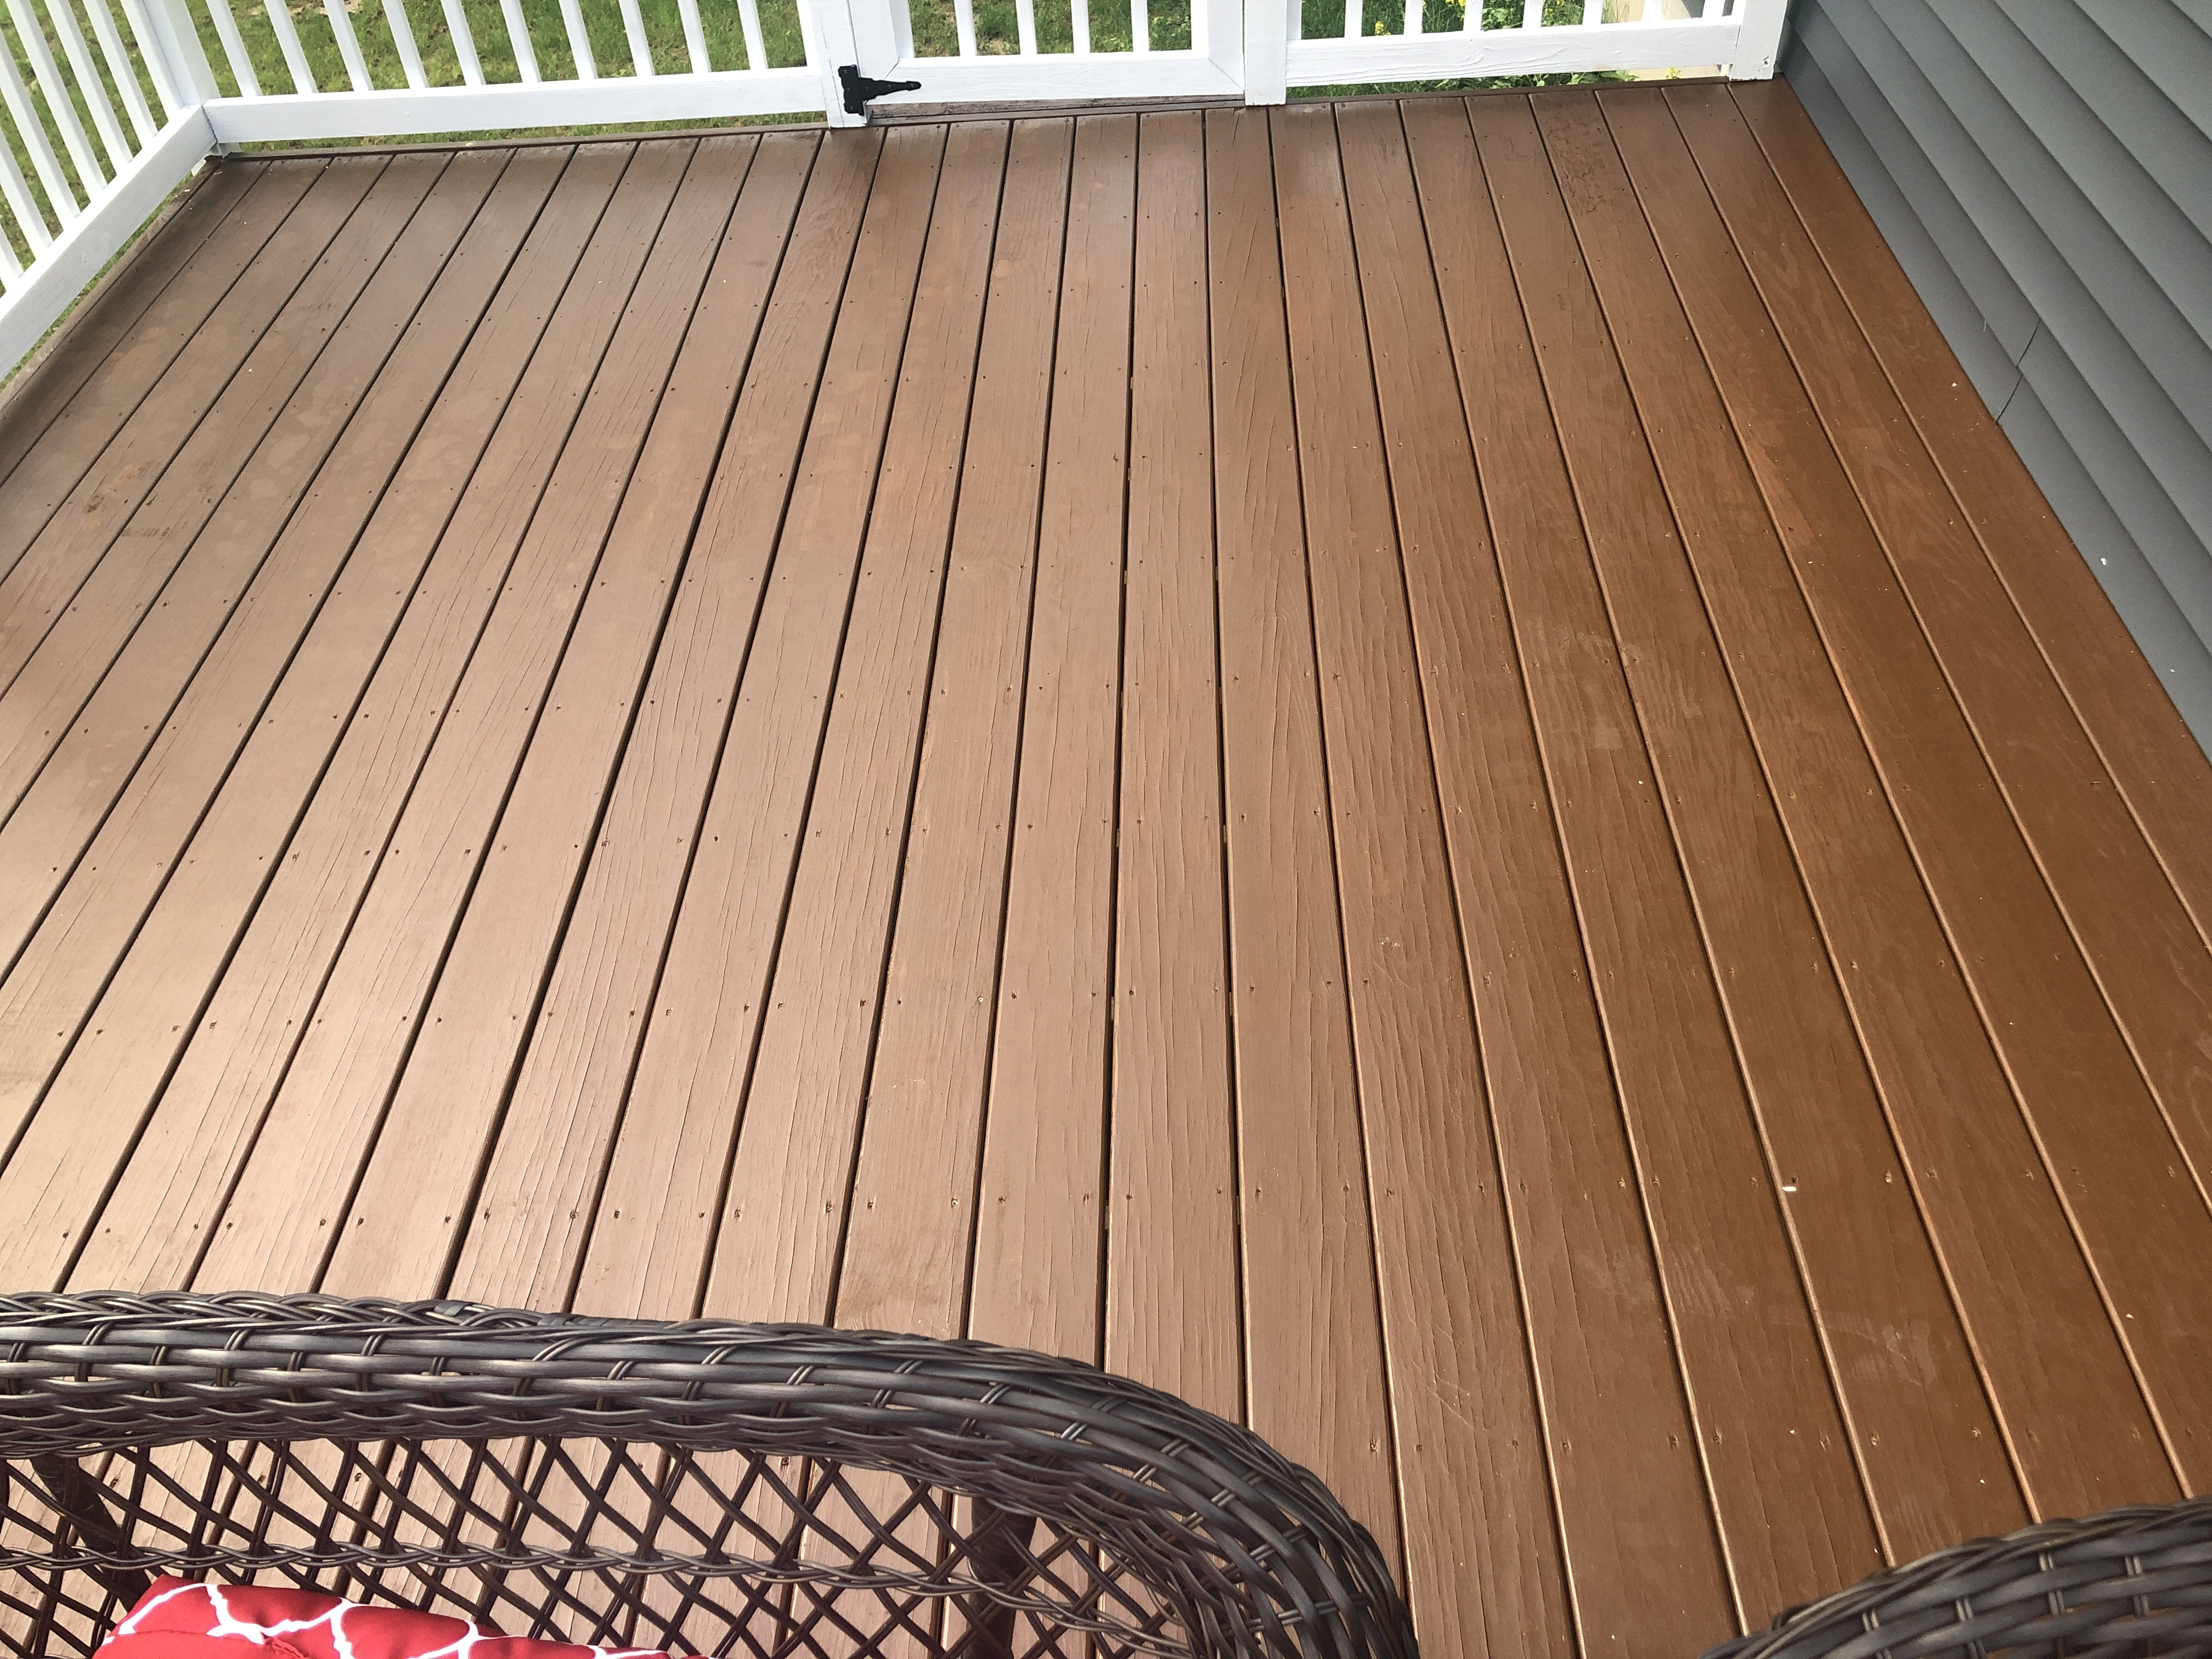 What is the worst deck stain best deck stain reviews - Pittsburgh exterior paint reviews ...